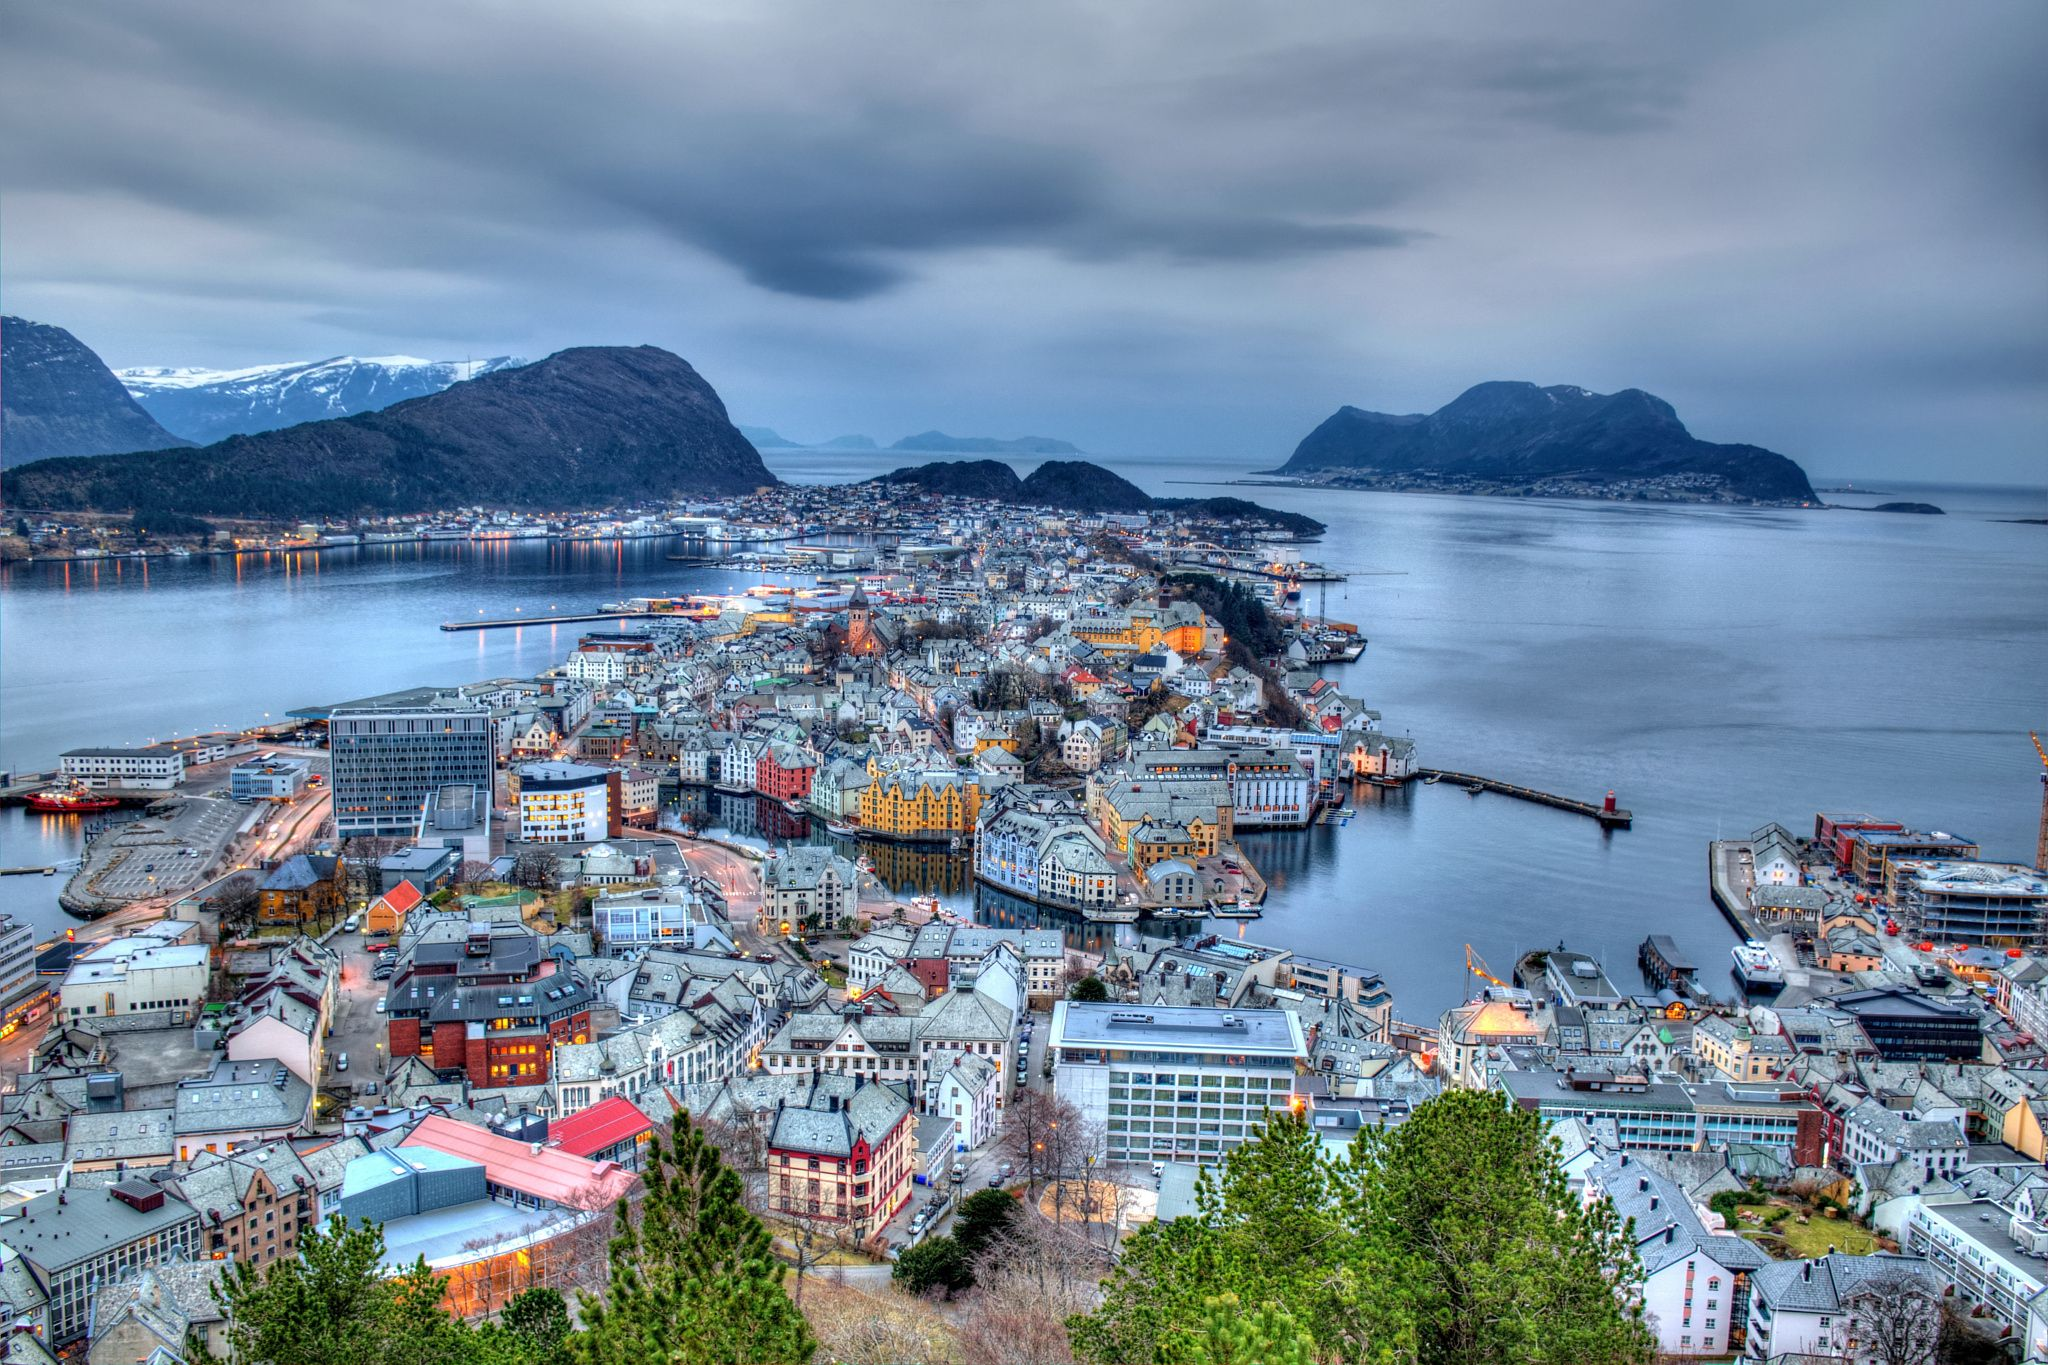 Photo City of Alesund in Norway by Péter Mocsonoky on 500px